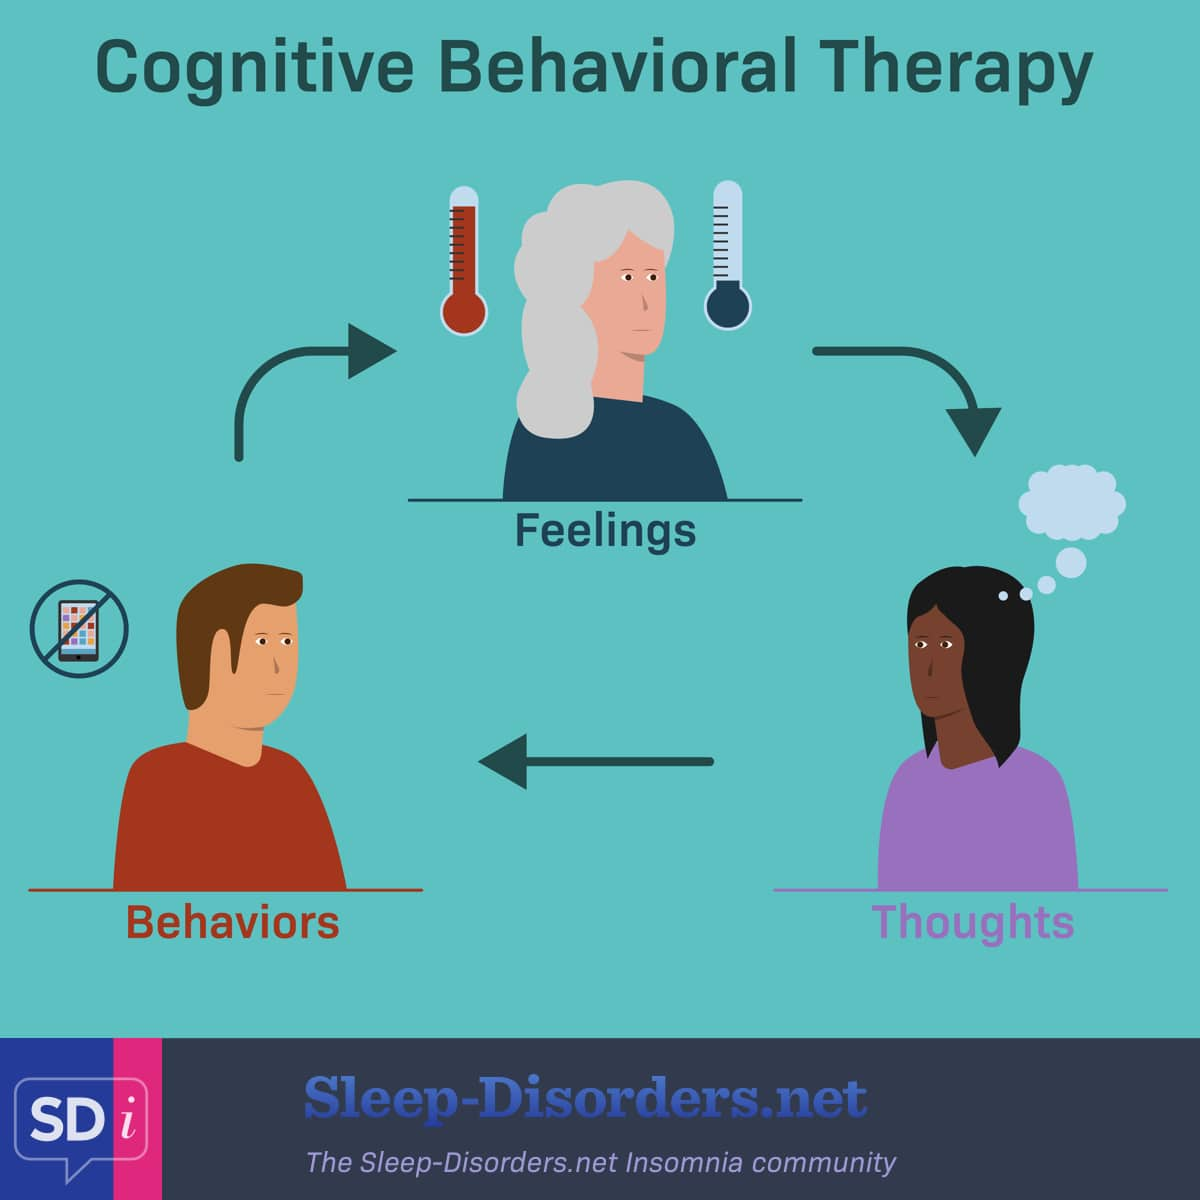 Cognitive behavioral therapy for insomnia explores the relationships between feelings, thoughts, and behaviors